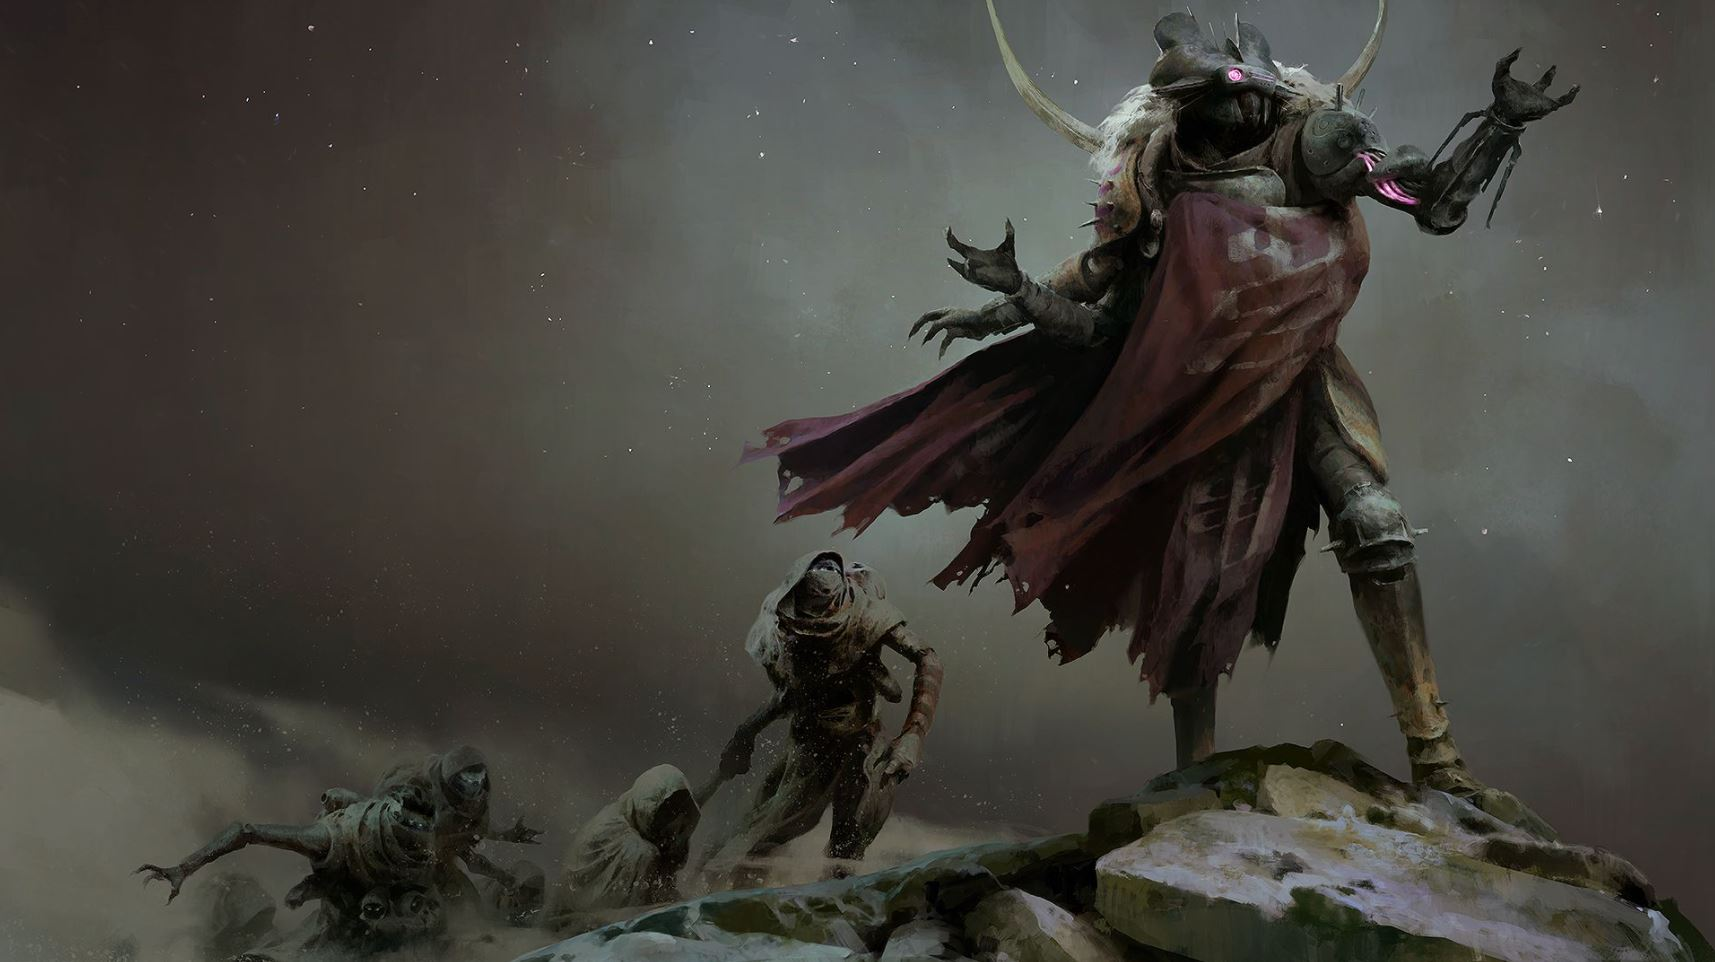 destiny-2-season-of-the-splicer-releases-next-week-full-details-and-roadmap-revealed-1